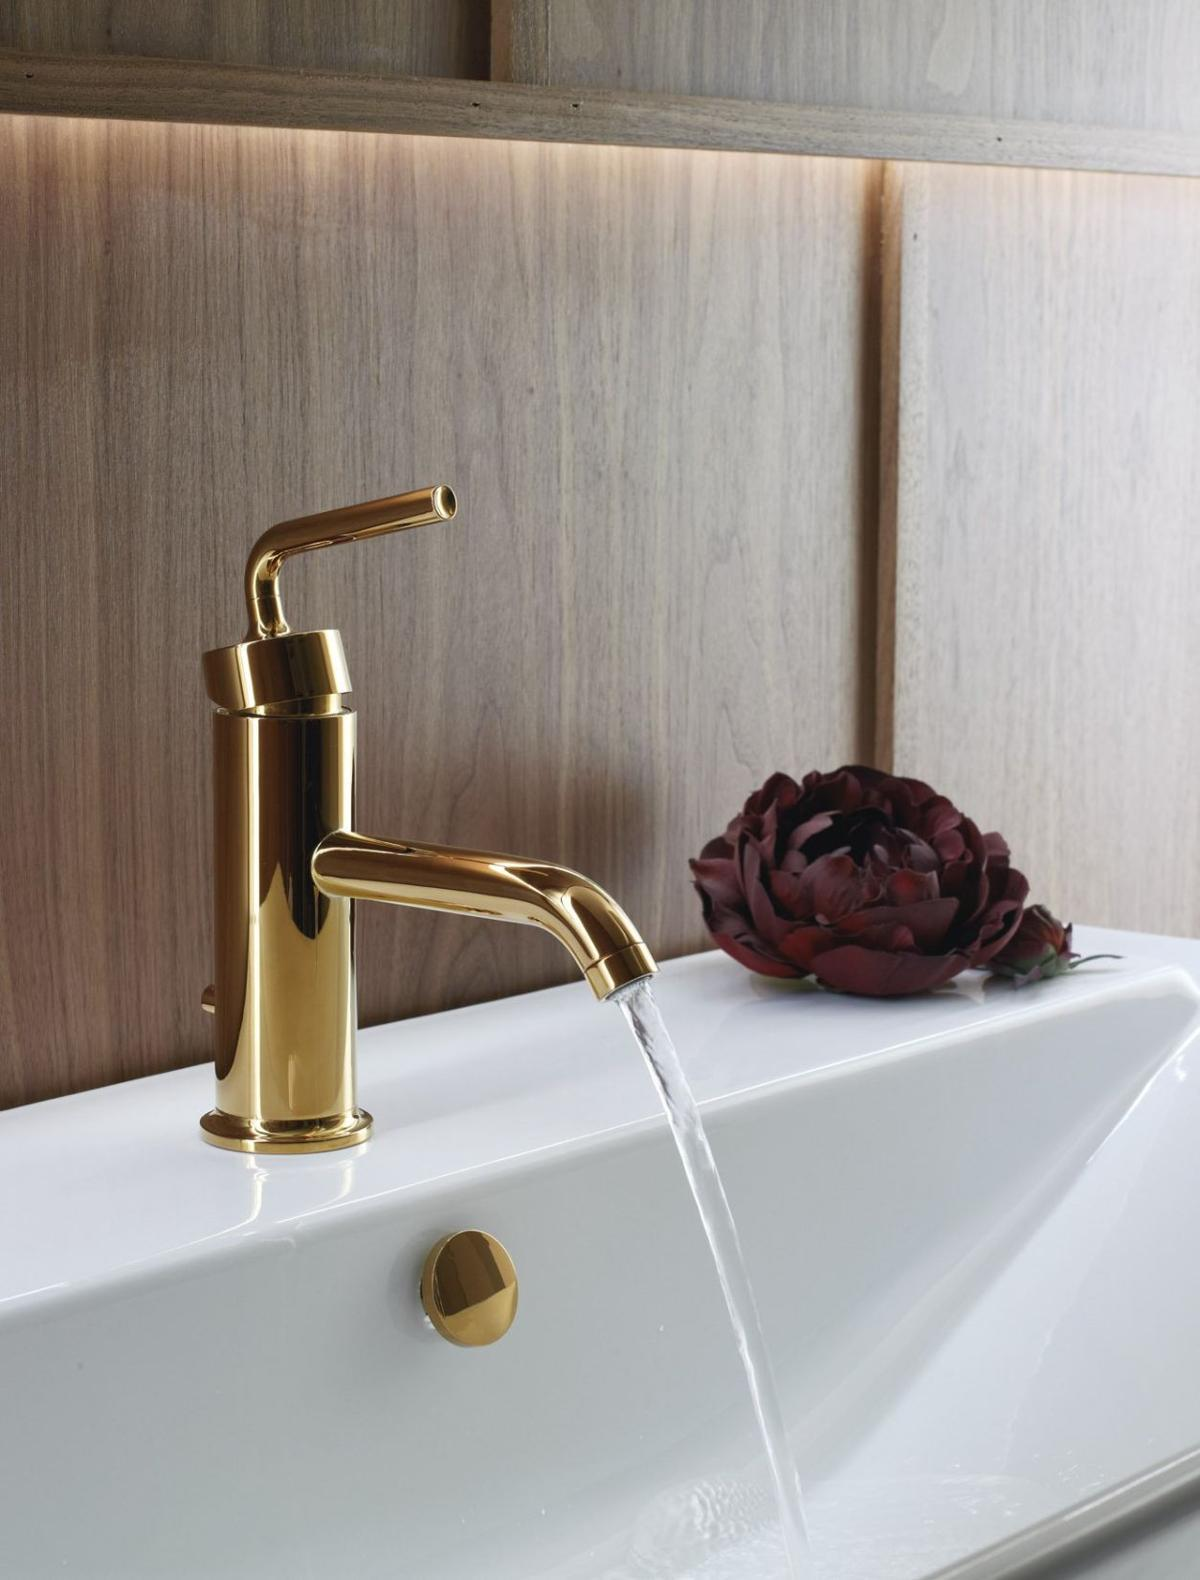 Gold Is Back In Home Decor And Design But Not Like You Remember - Pacific sales bathroom faucets for bathroom decor ideas